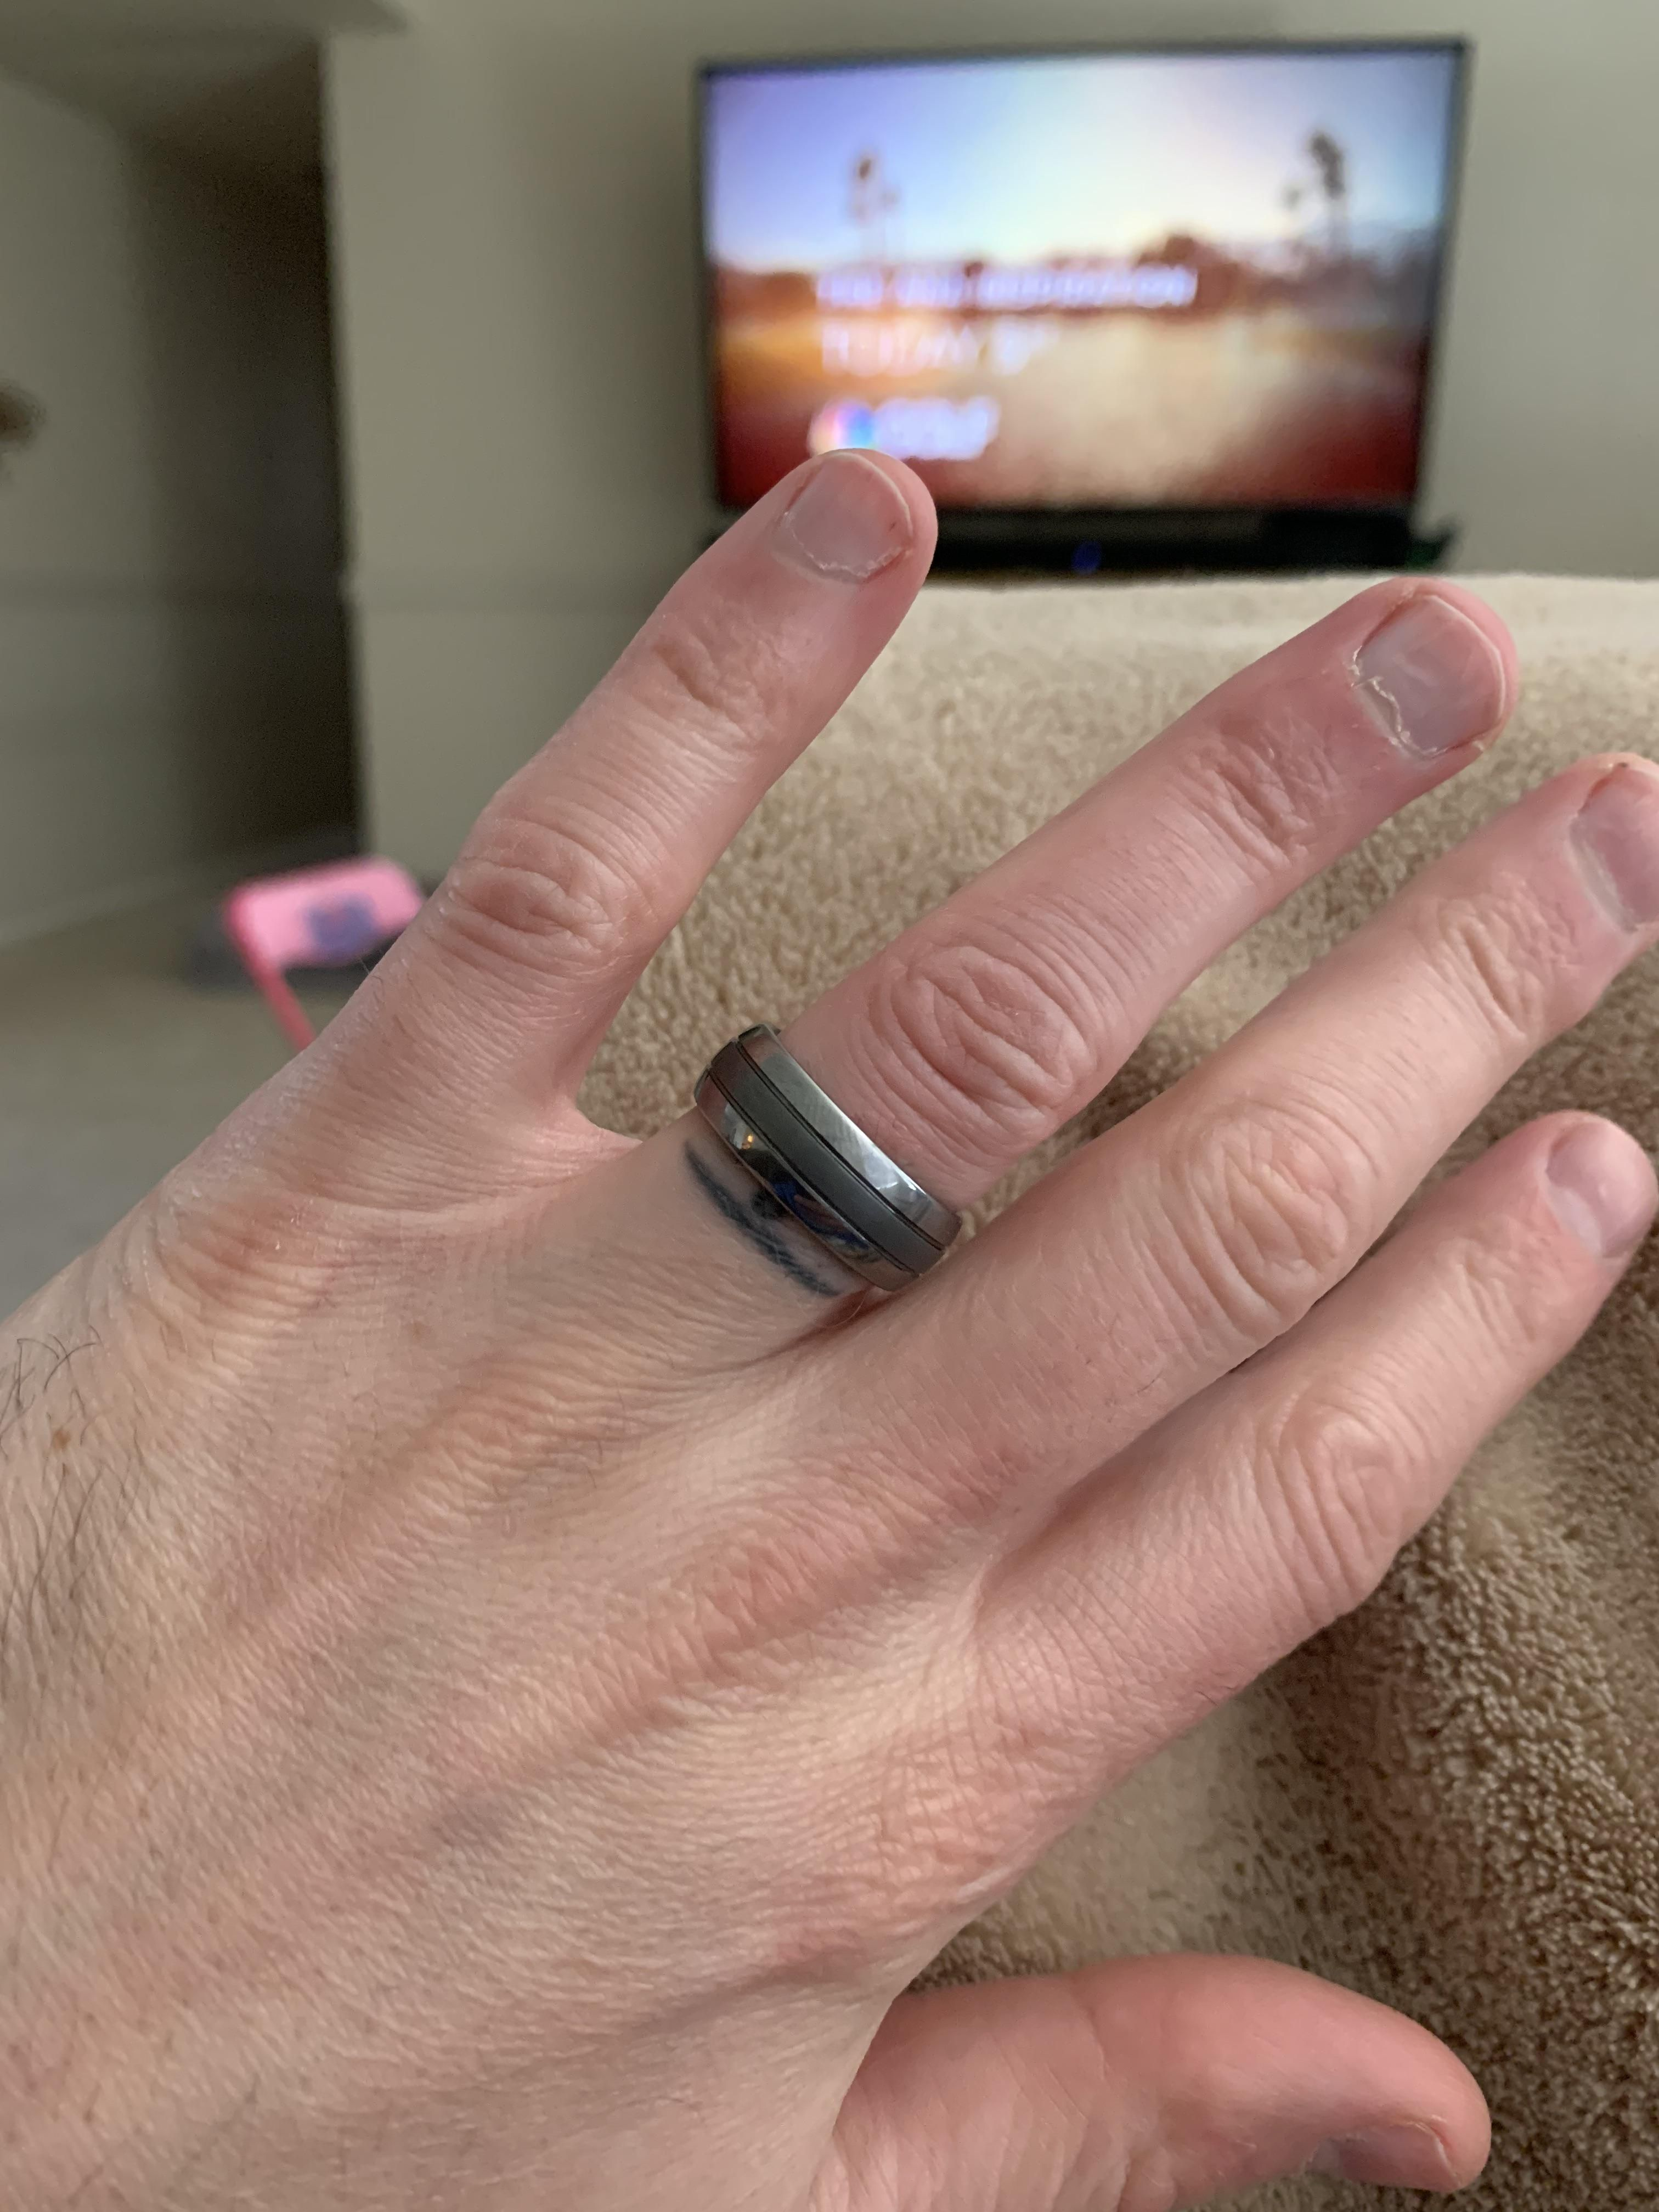 So about 6 years ago I lost my wedding ring. I ended up getting a tattoo rather than replace it. We have moved twice since then and live in a different state. My wife just found it in old purse.